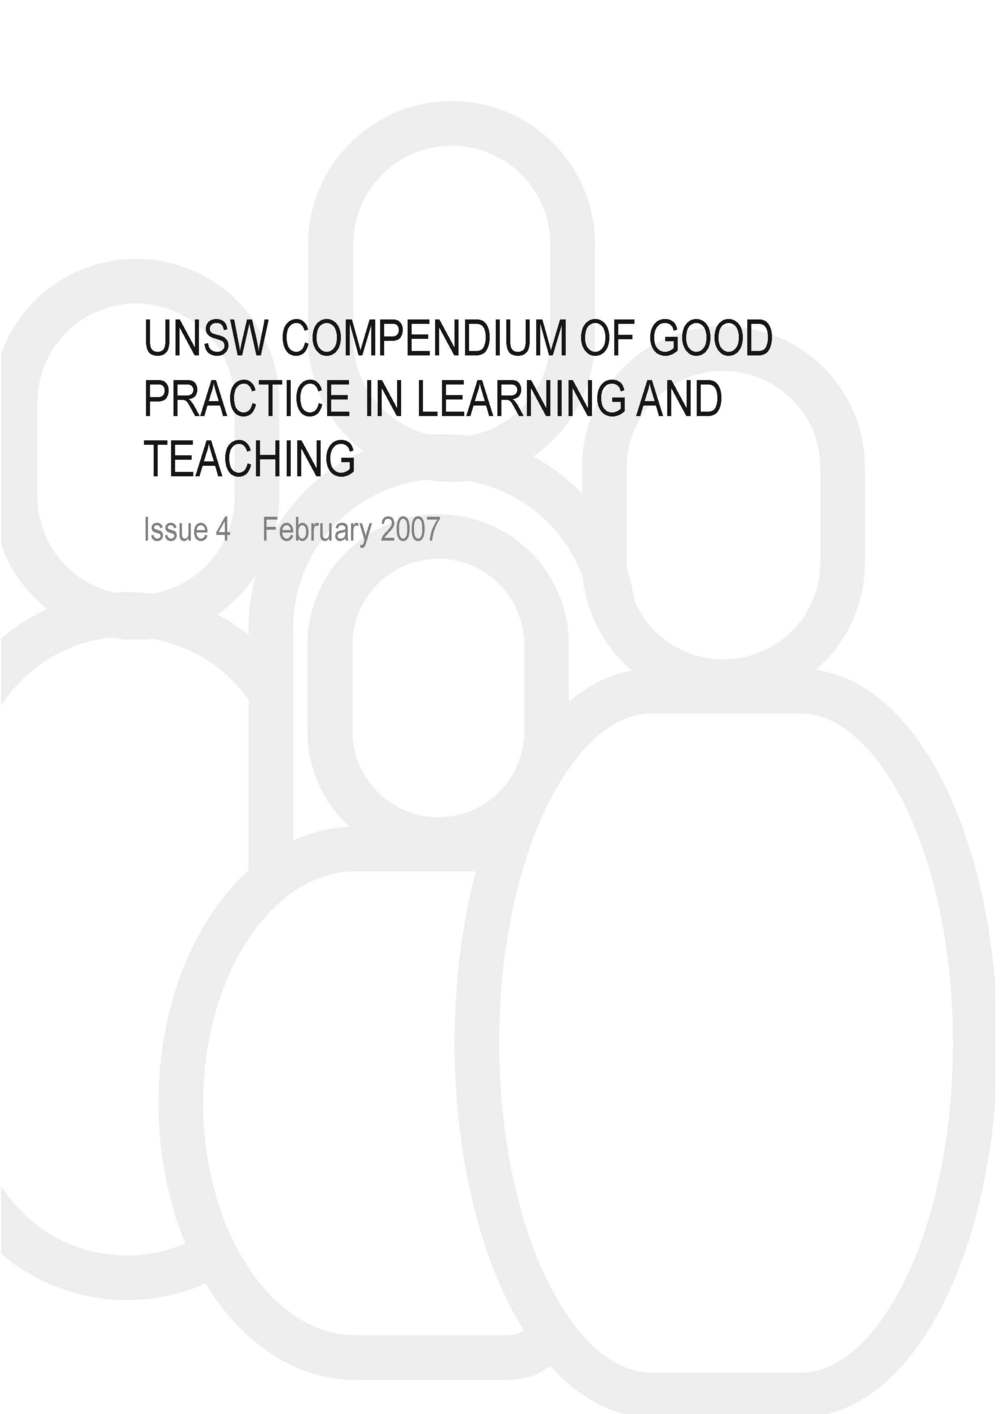 UNSW_Compendium_Issue4_Feb07_Page_1.jpg